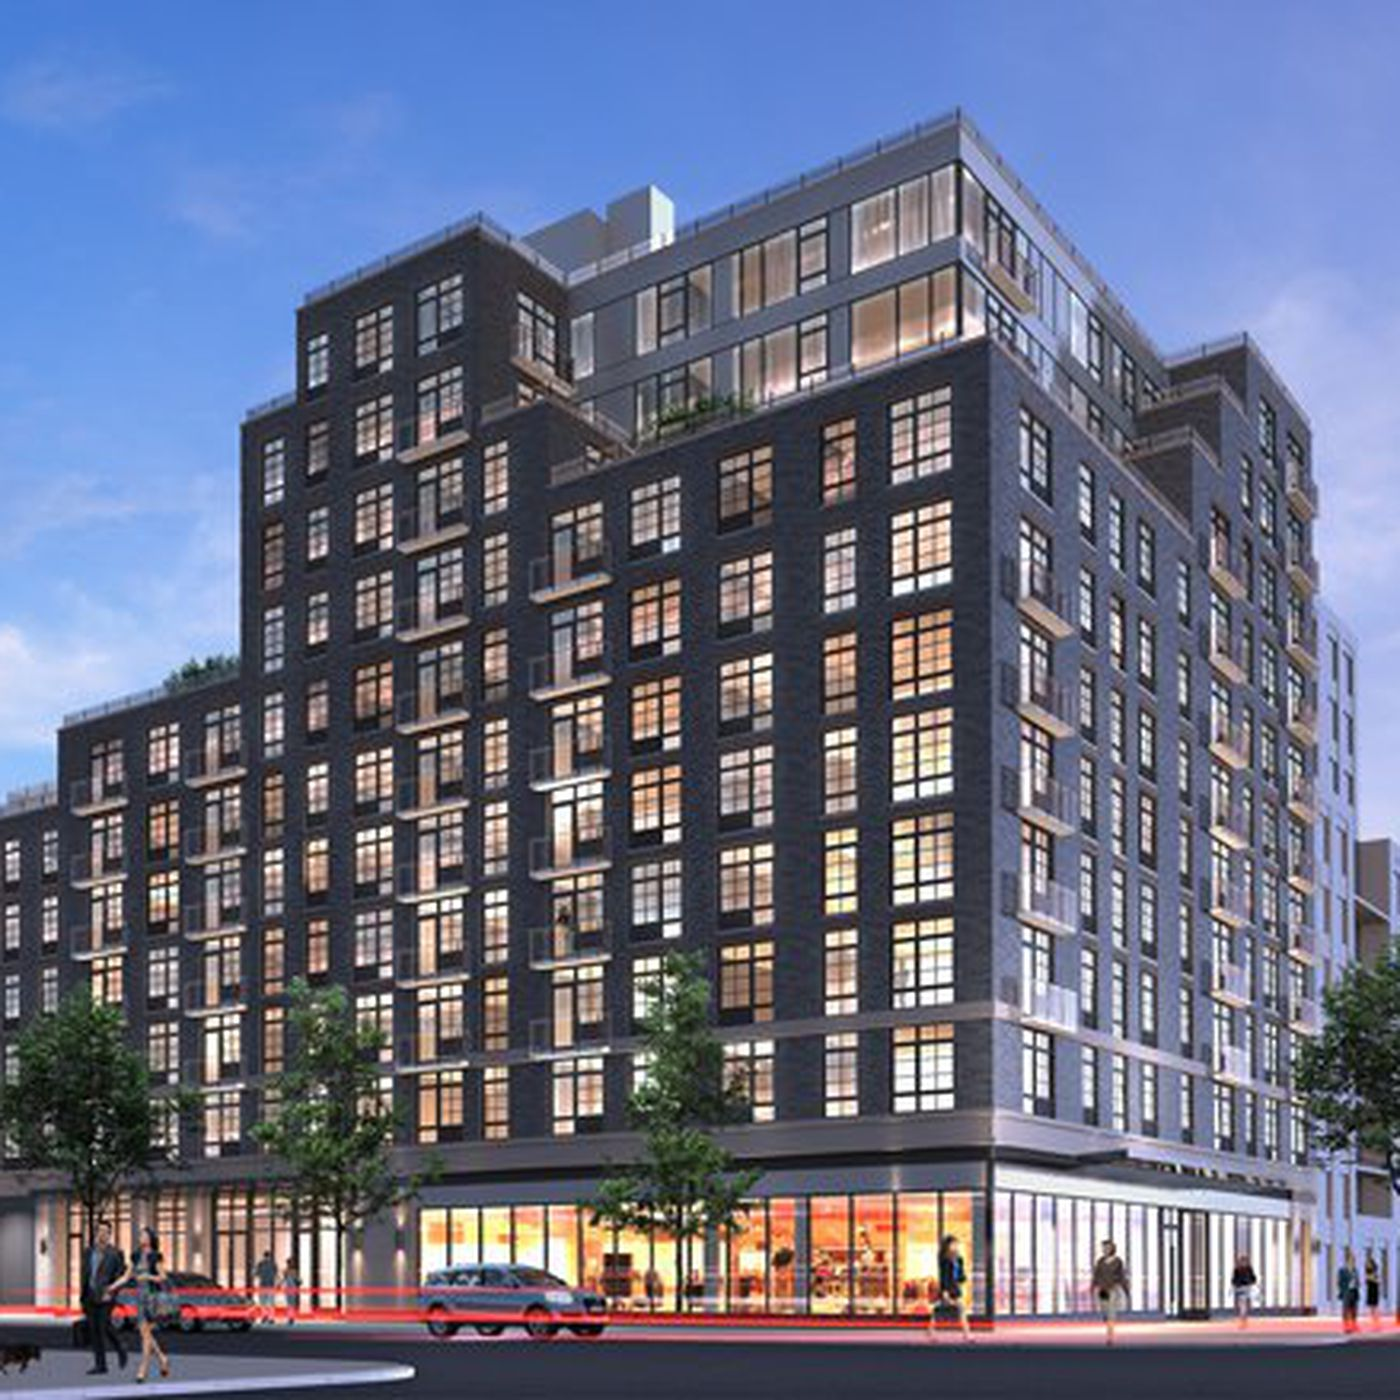 In Harlem, two new buildings offer up affordable apartments from $913/month  - Curbed NY